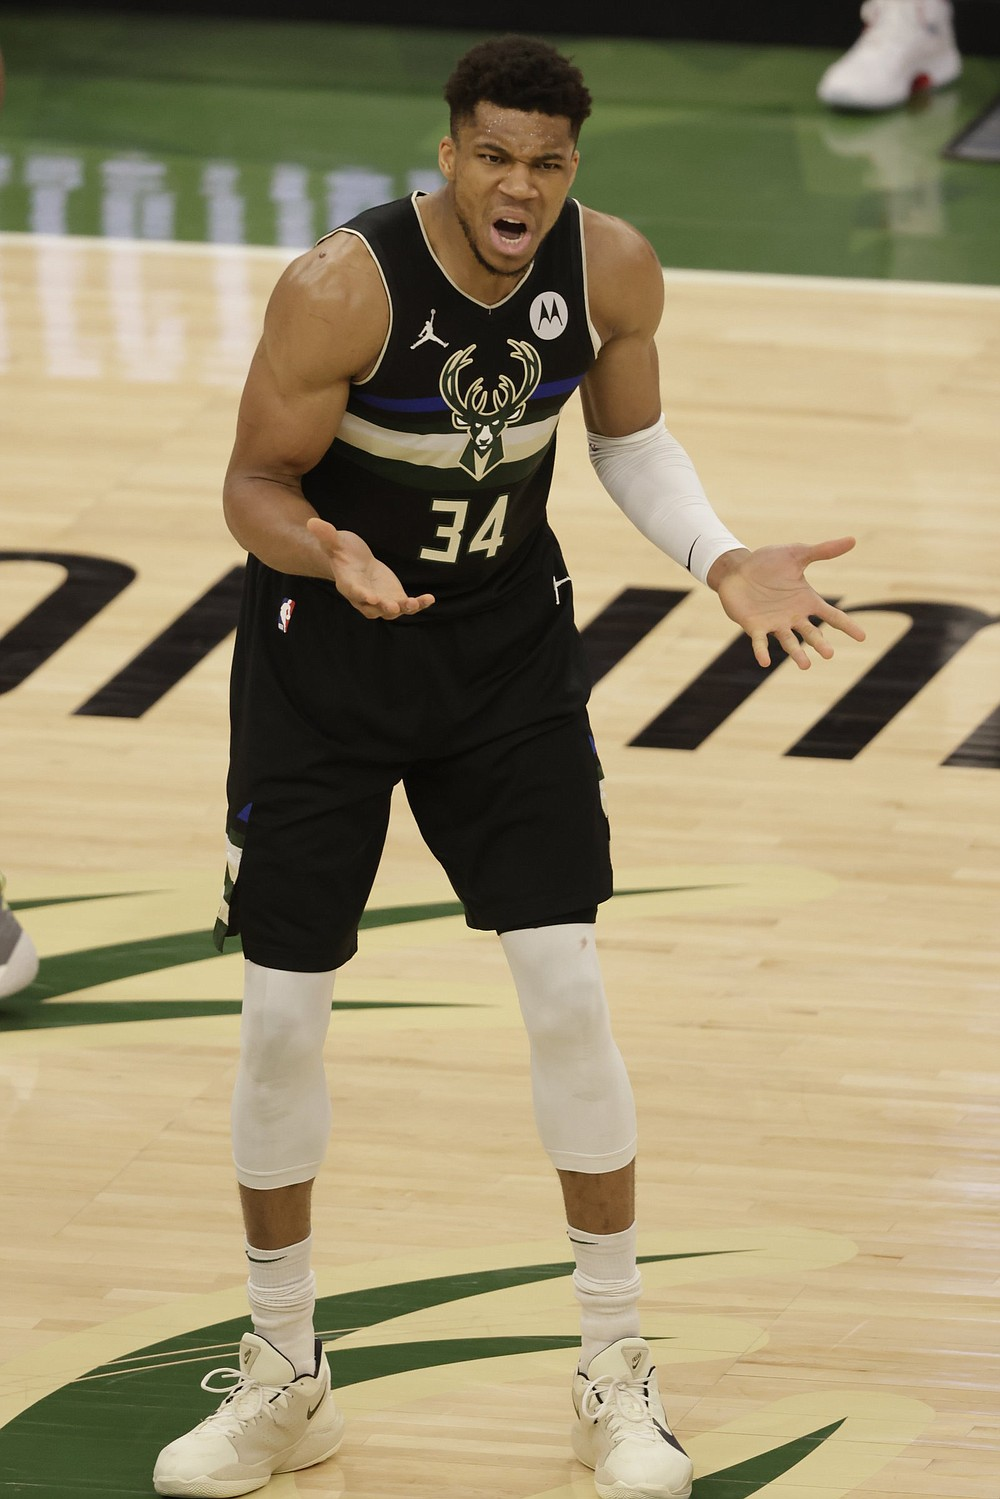 Giannis Antetokounmpo (shown) and the Milwaukee Bucks defeated the Brooklyn Nets 104-89 on Thursday night to force a Game 7 in their NBA Eastern Conference semifinal series. Khris Middleton had 38 points and 10 rebounds, while Antetokounmpo finished with 30 points and 17 rebounds to lead the Bucks.  (AP/Jeffrey Phelps)